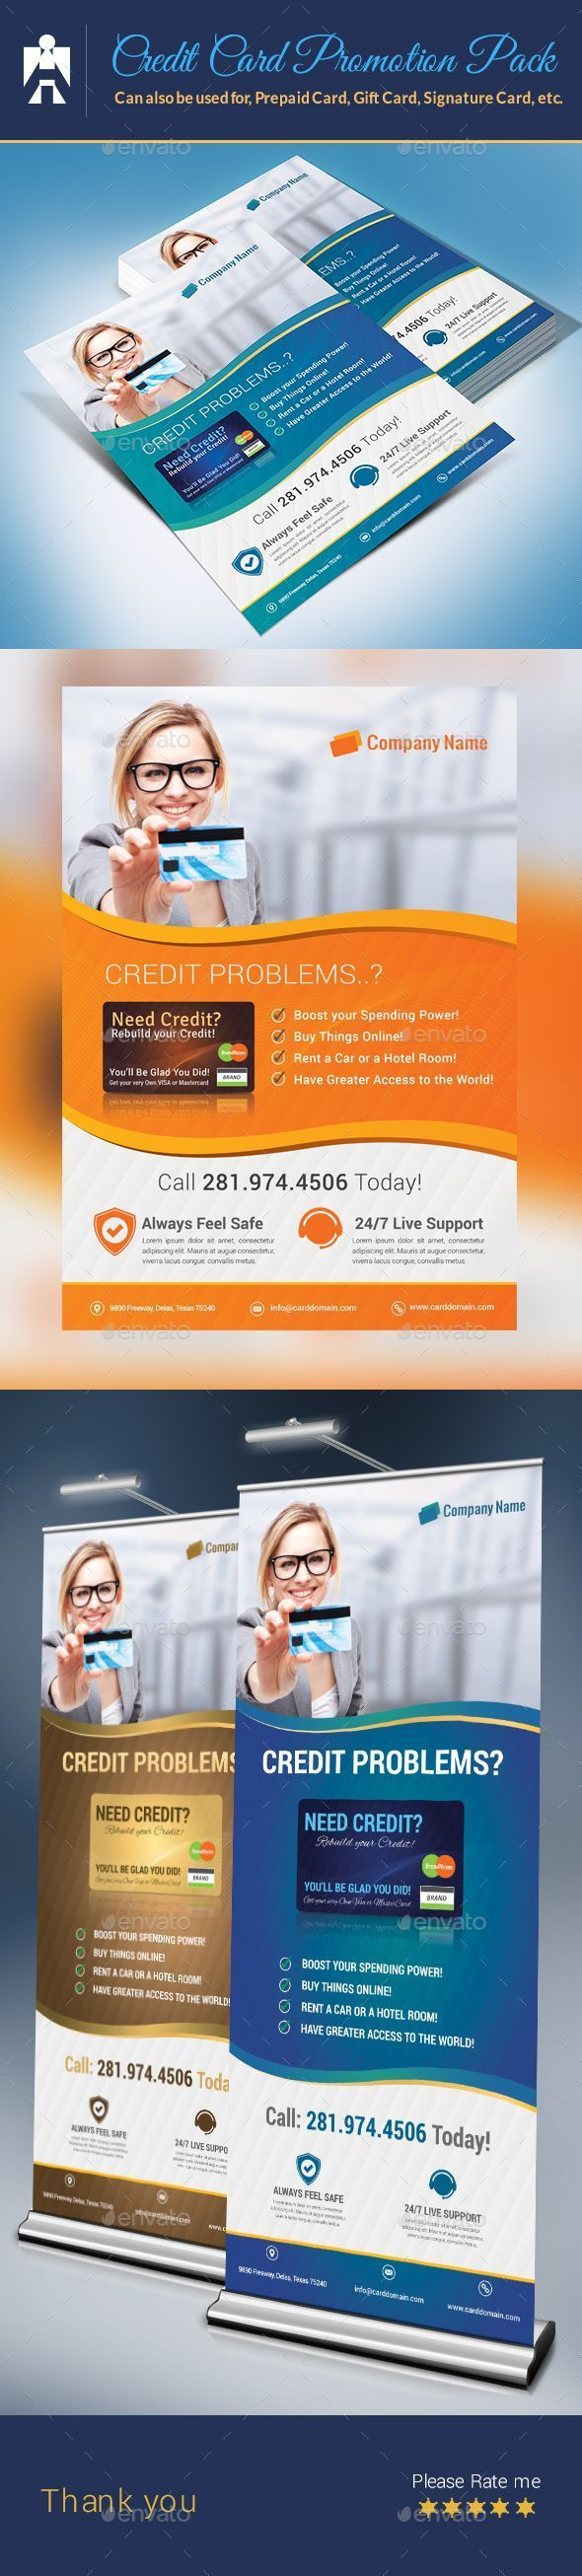 Credit Card Promotion Pack Flyer and Roll-Up Templates PSD #design Download: gra...